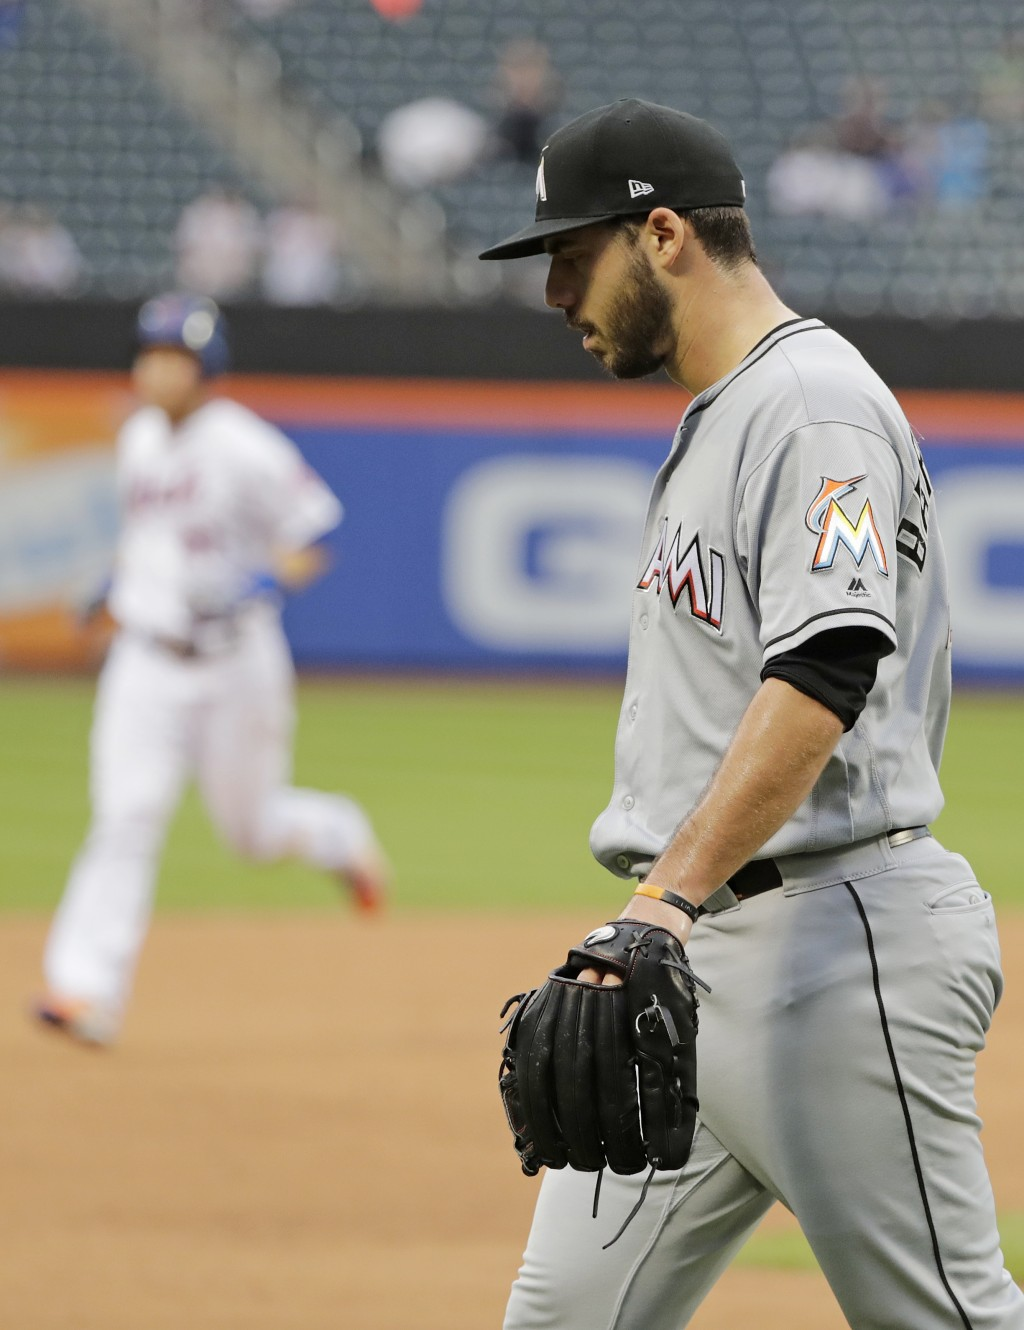 Miami Marlins relief pitcher Kyle Barraclough, right, reacts as New York Mets' Todd Frazier runs the bases after hitting a walkoff home run during the